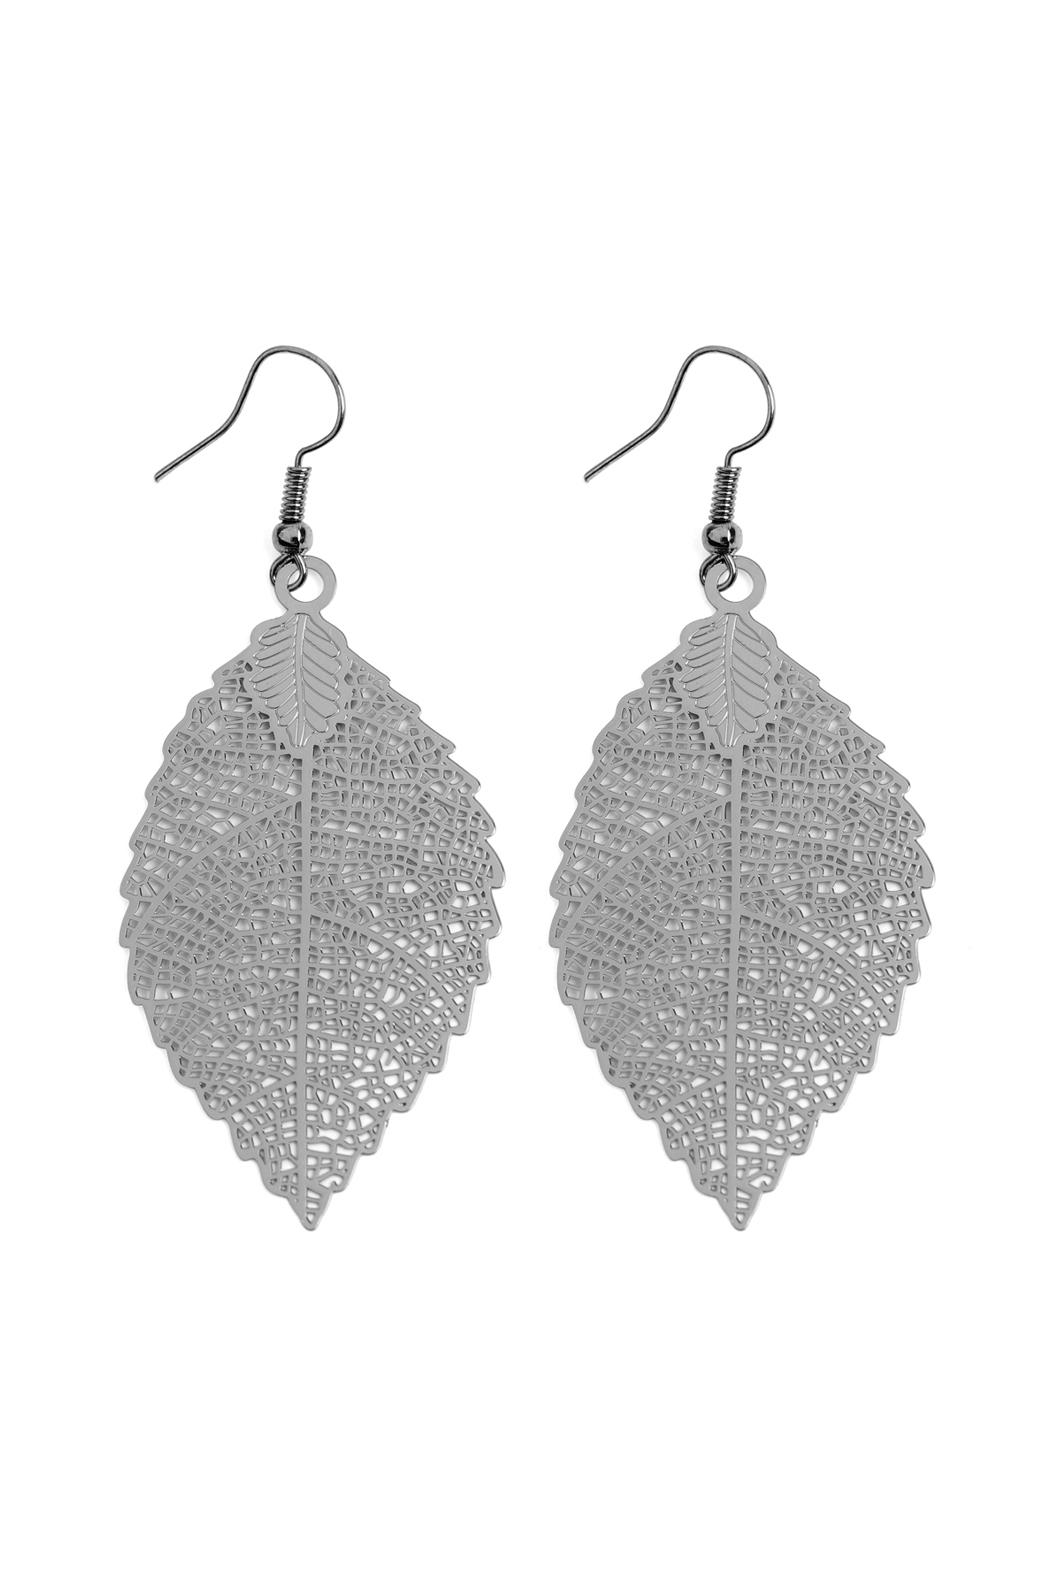 Riah Fashion Filigree-Leaf Hook-Earrings - Main Image